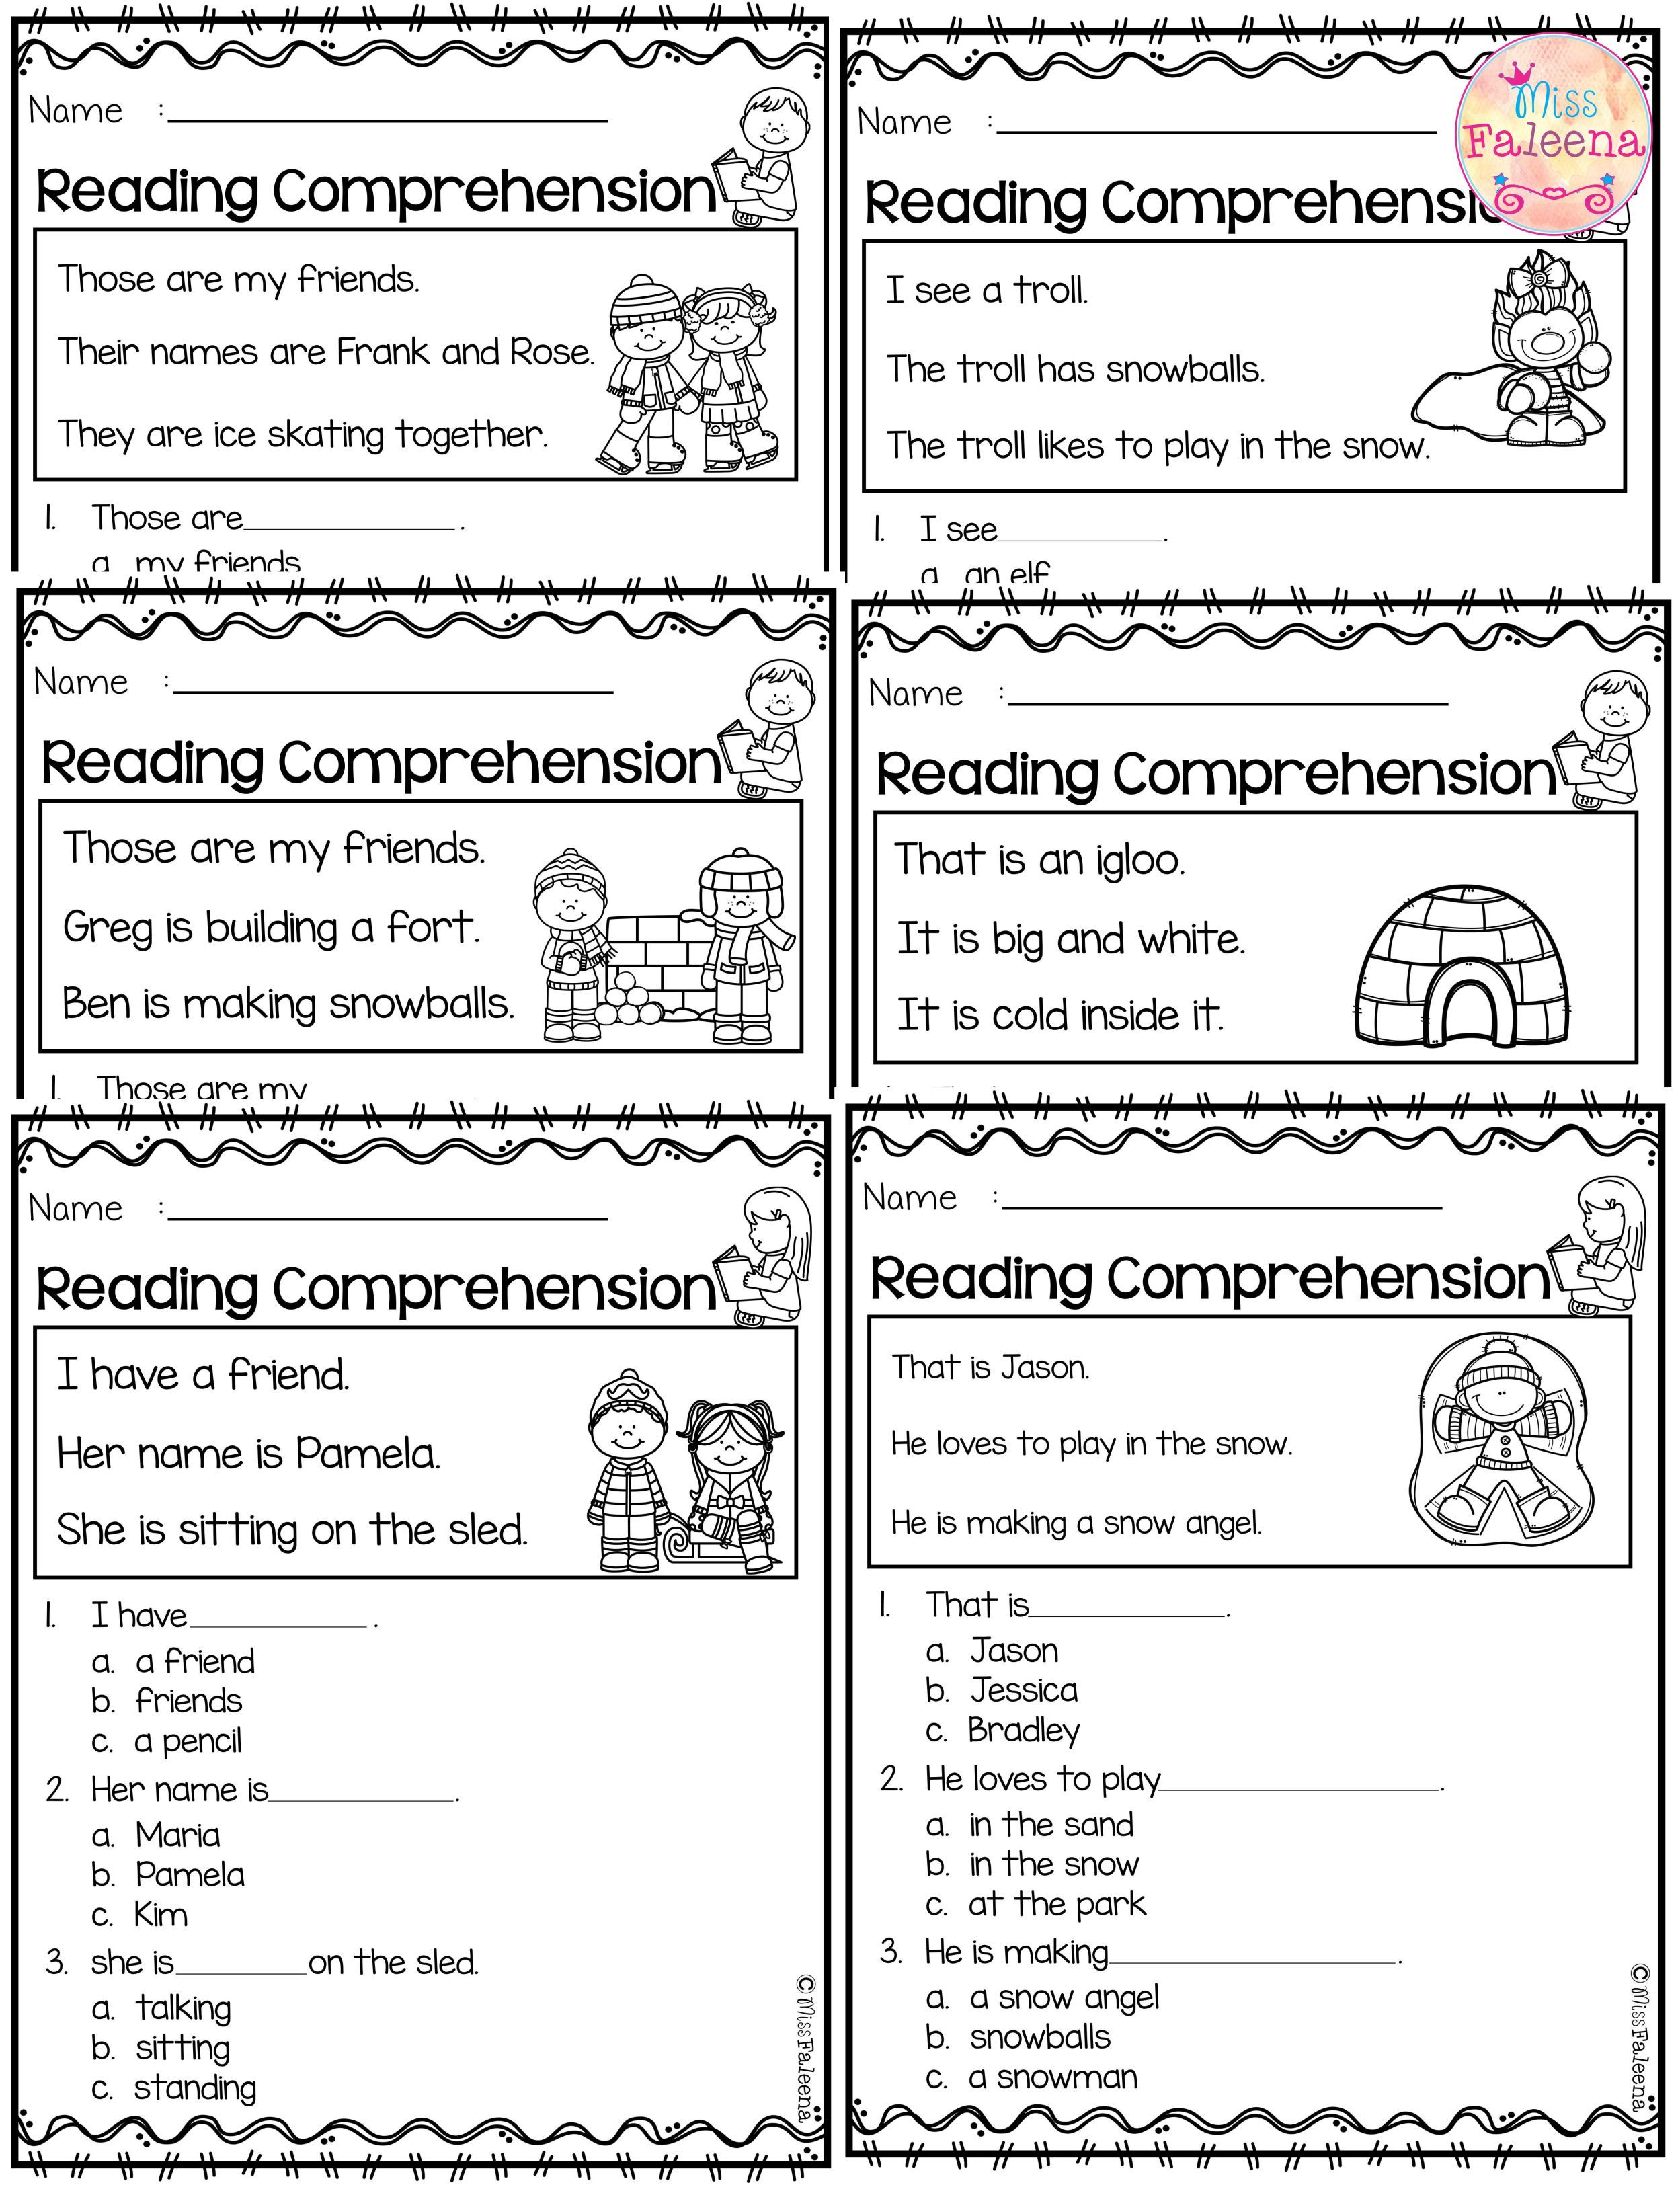 January Reading Comprehension